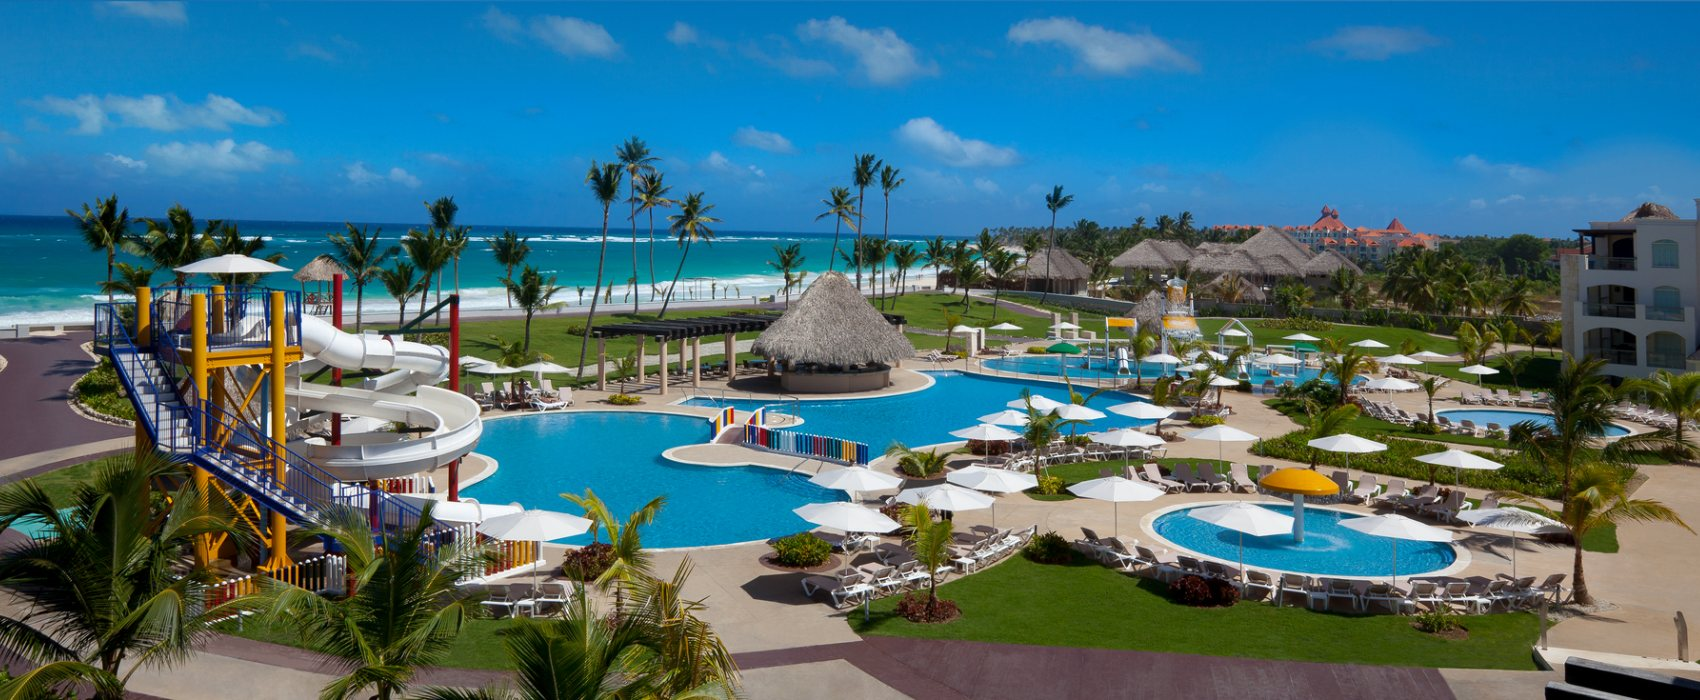 Best Hotels in Punta Cana / Hard Rock Hotel and Casino